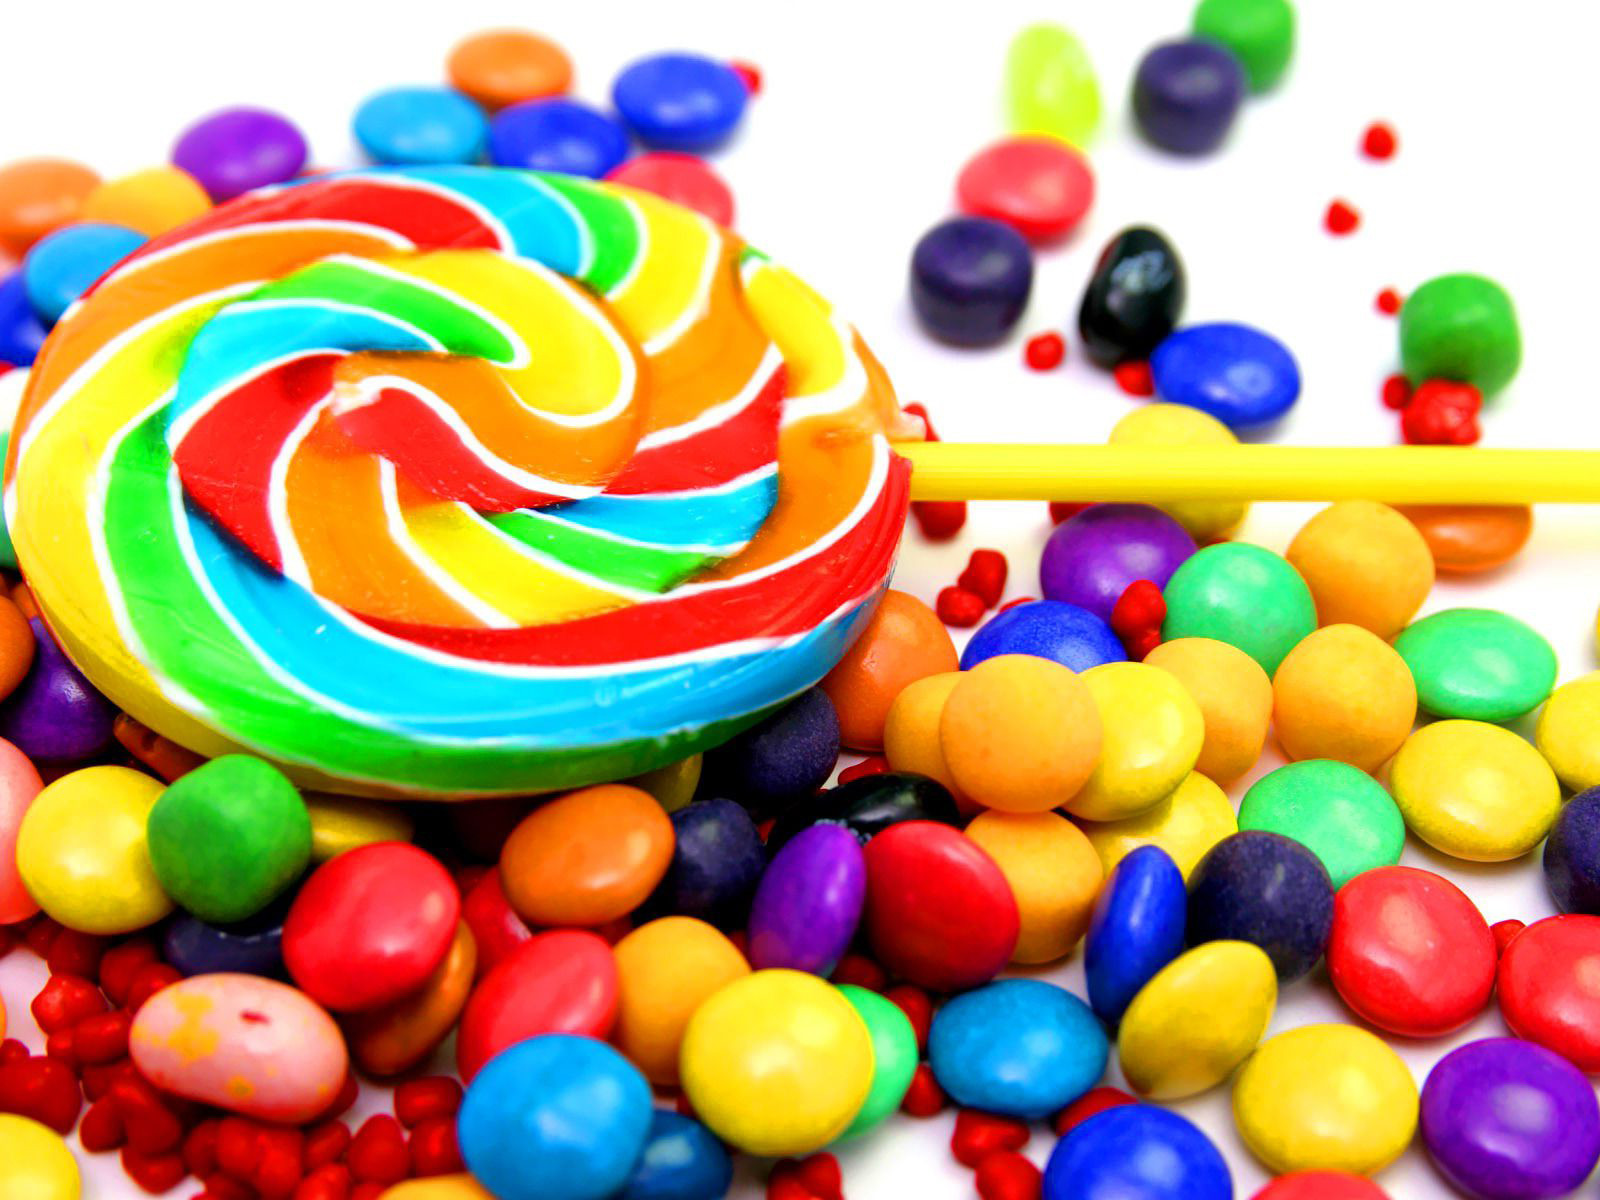 Lots of delicious colorful candies - Children love sweets Wallpaper ...